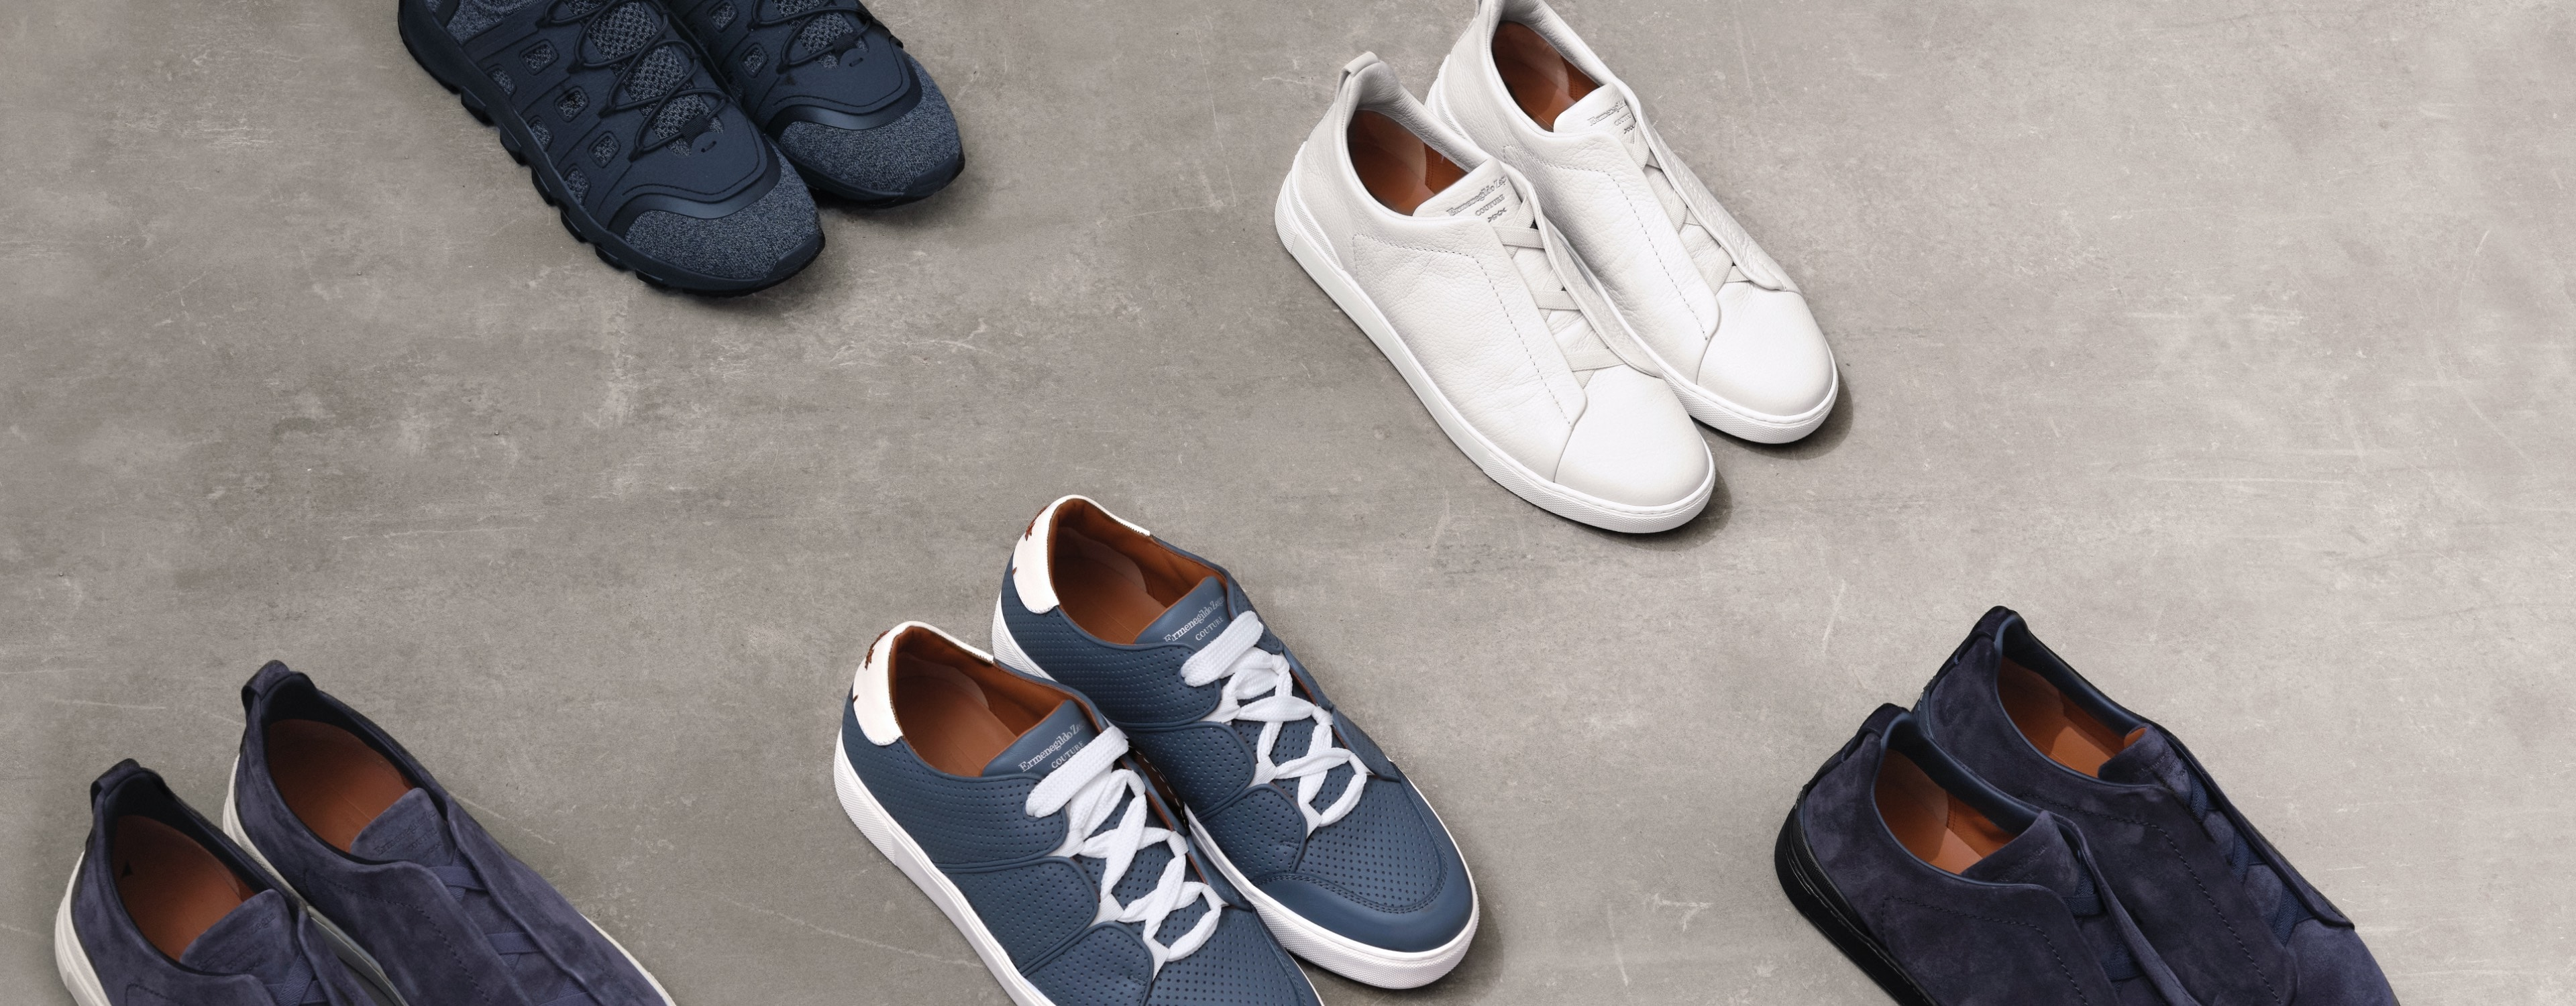 The luxurious comfort of men's sneakers by Zegna